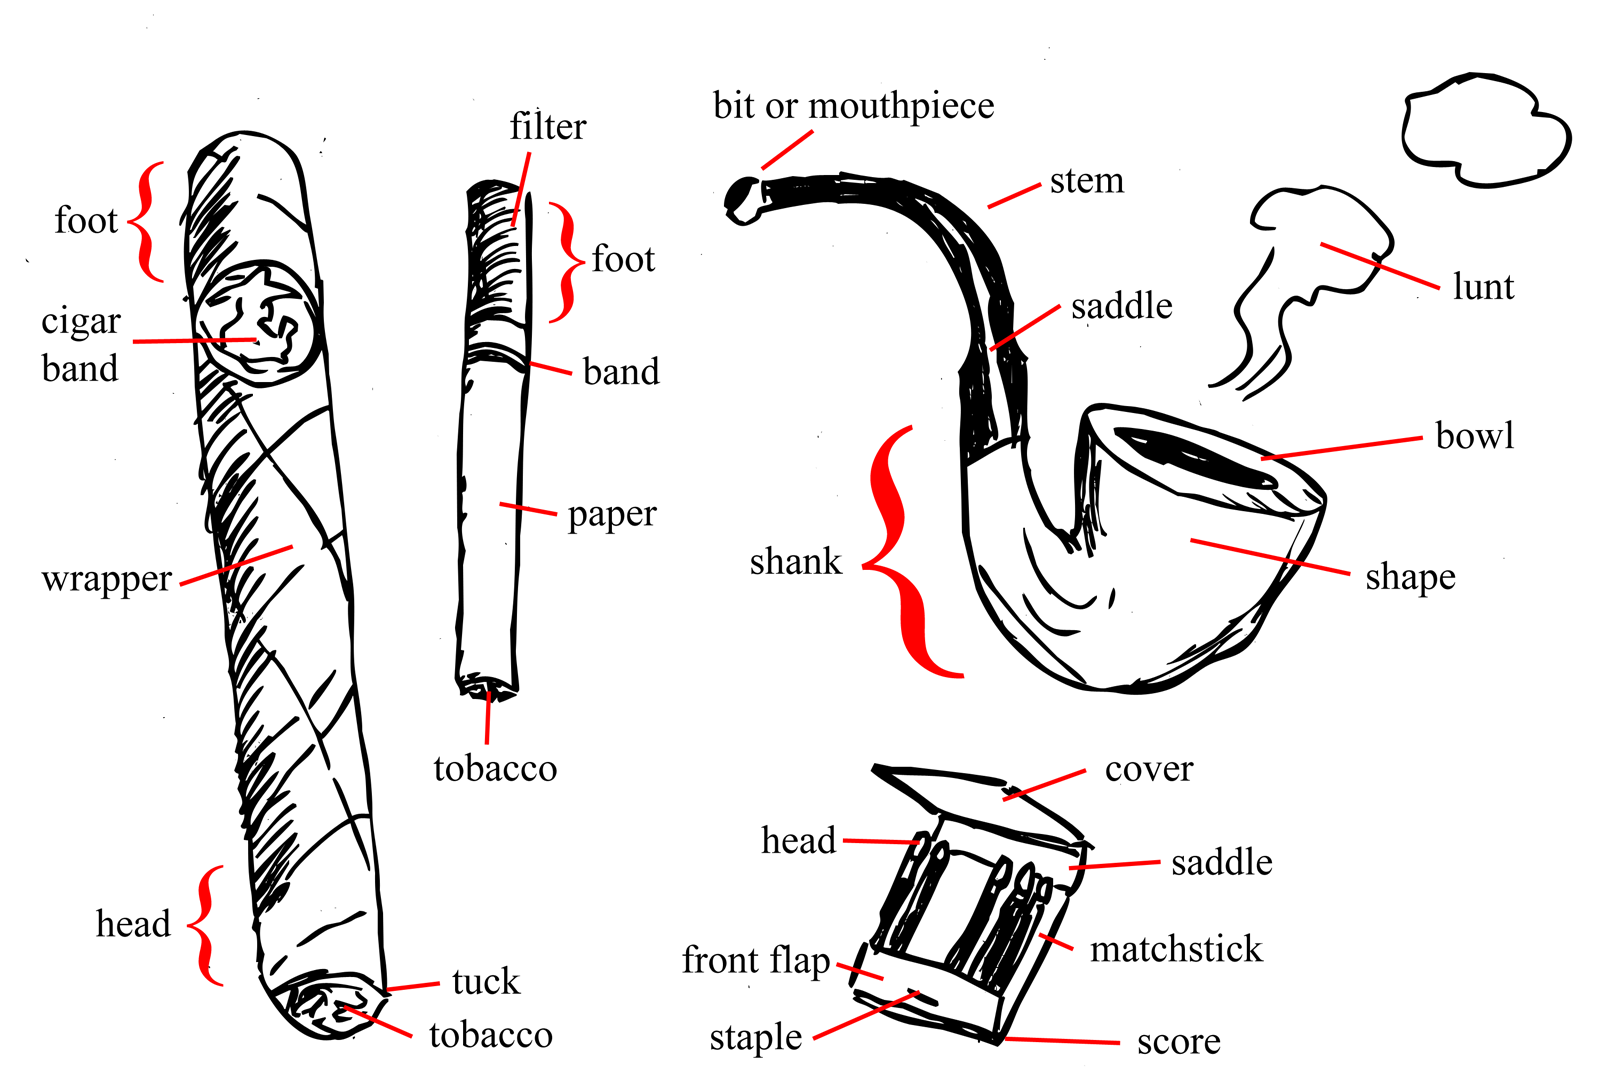 Names of the parts of a cigar, cigarette, pipe and matchbook